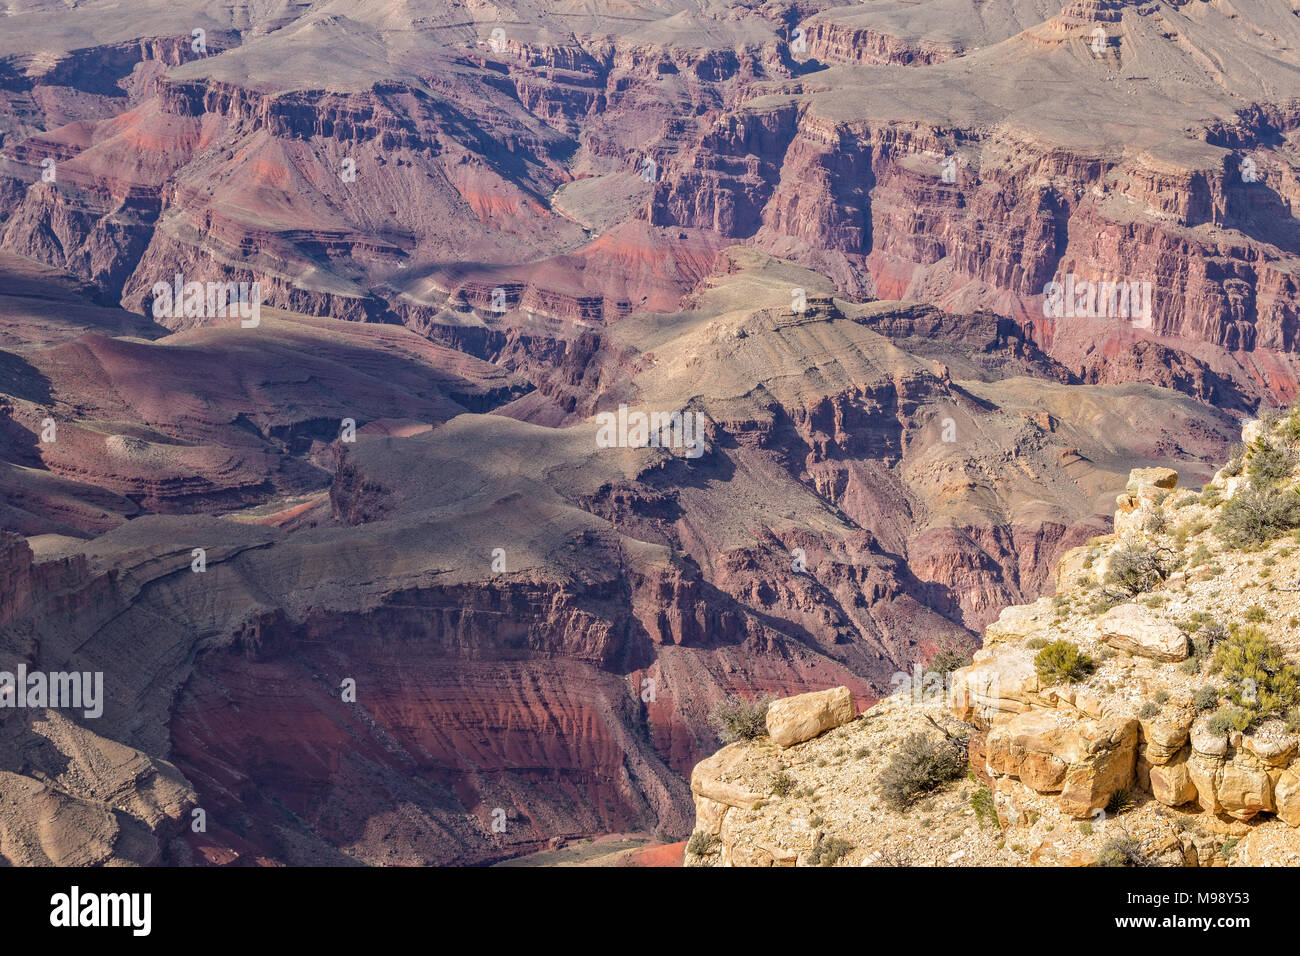 Grand Canyon South Rim Landscape - Stock Image